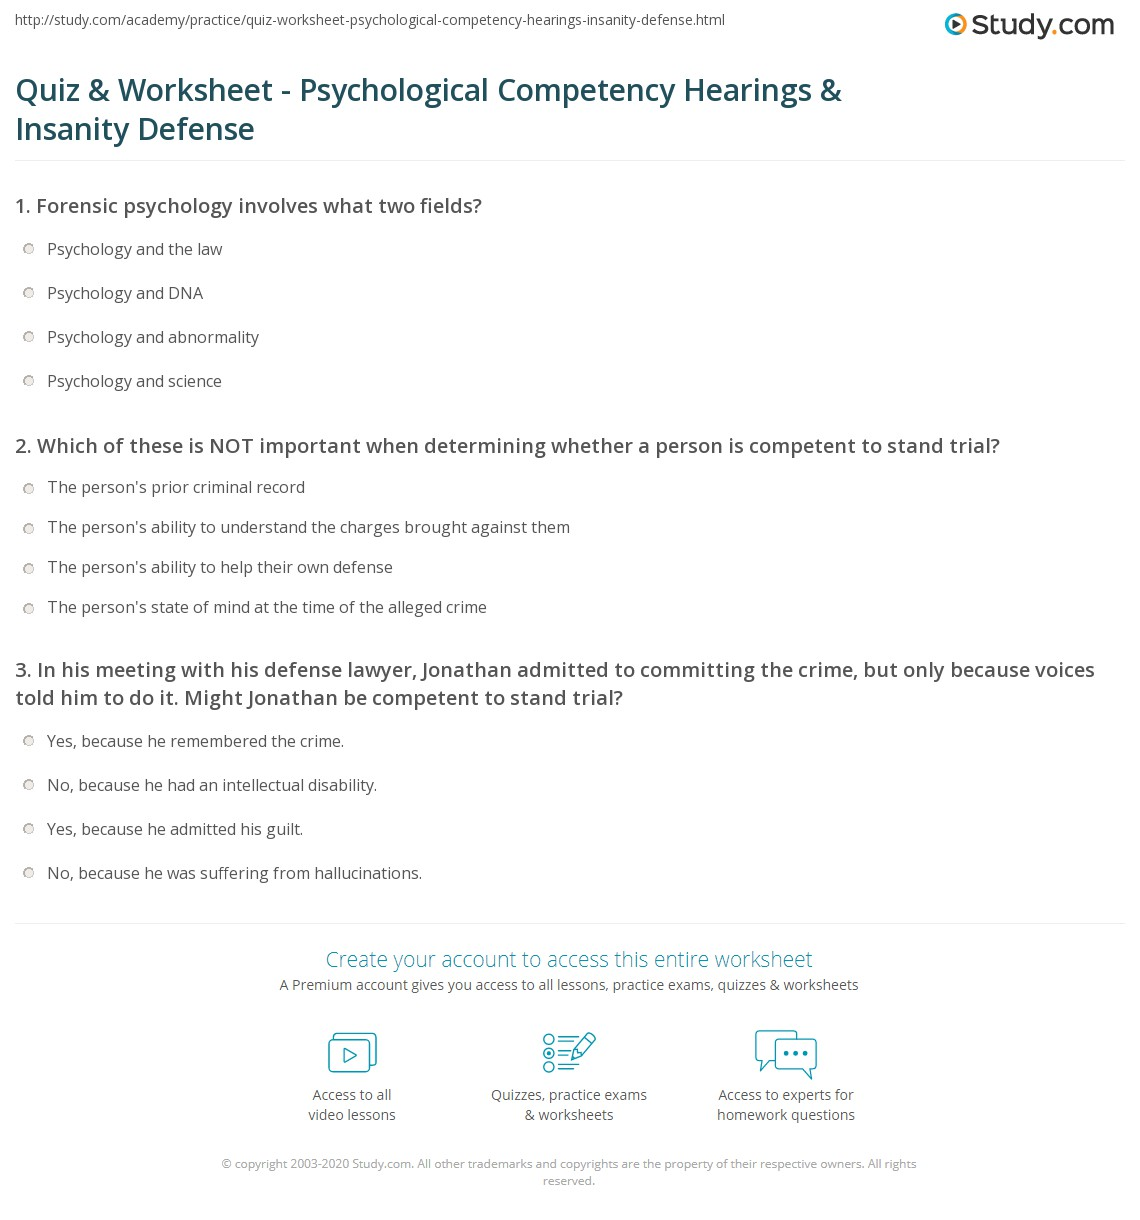 Quiz Worksheet Psychological Competency Hearings Insanity